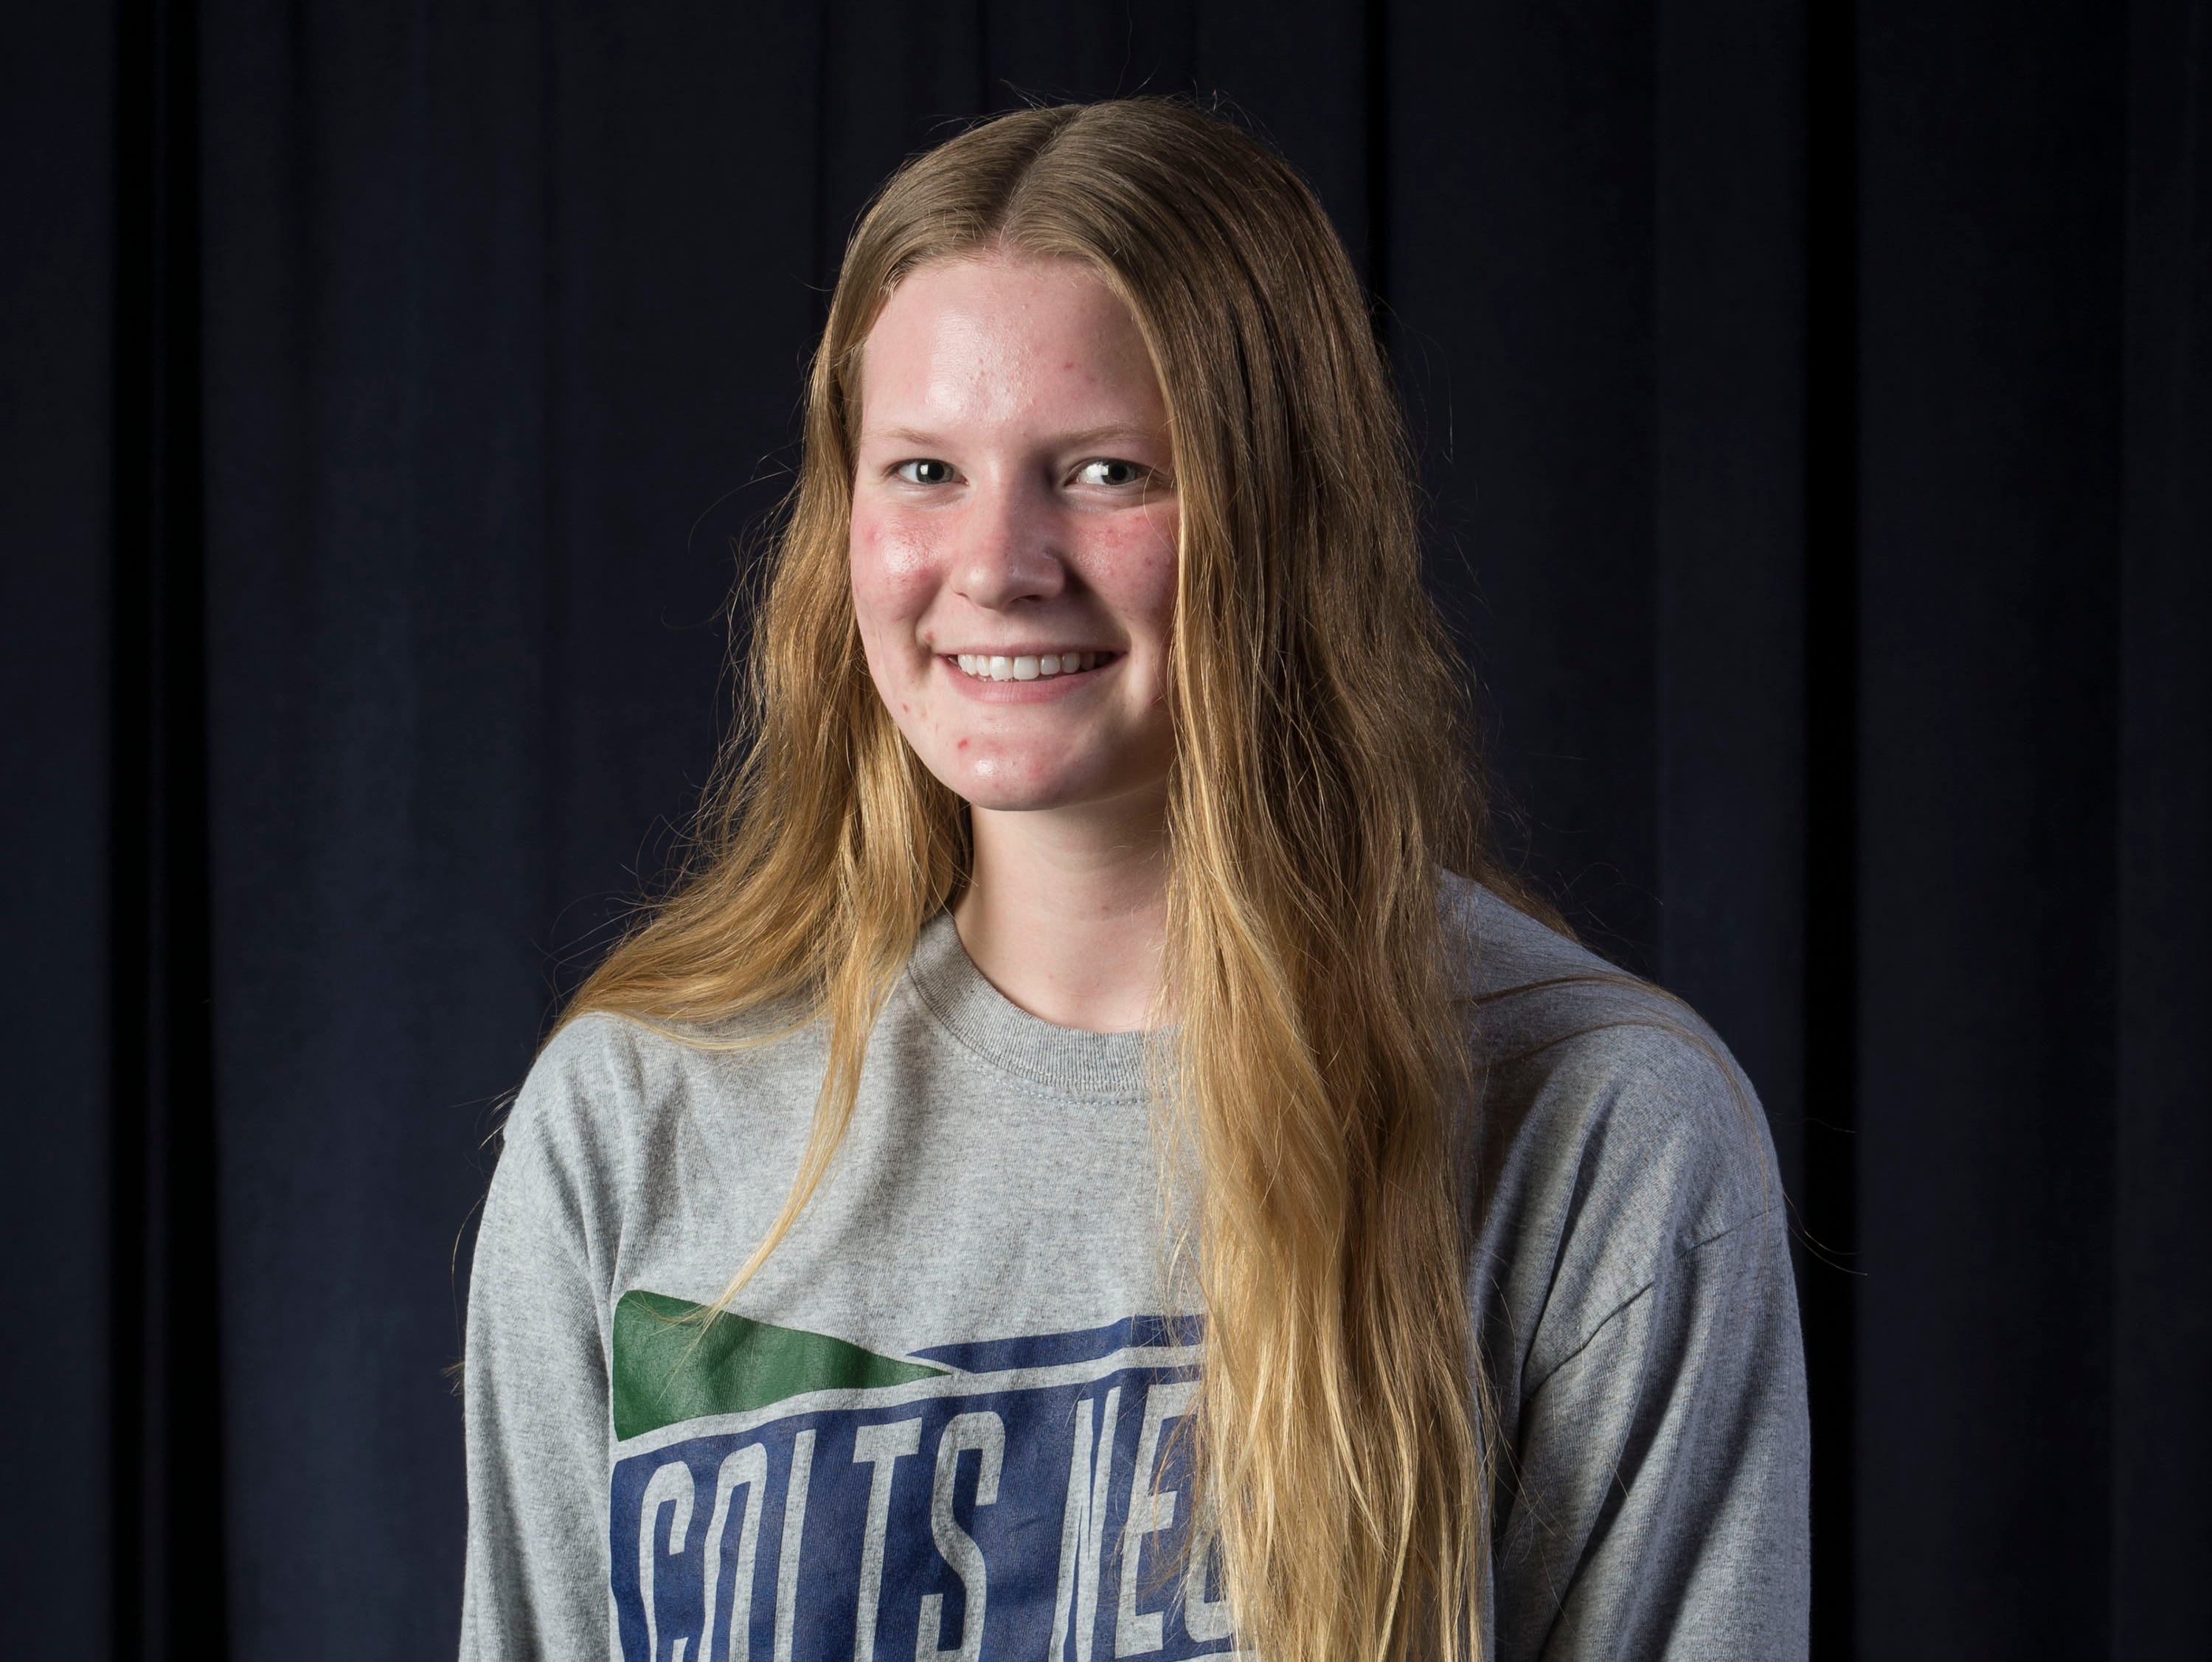 The 2019 All-Shore Girls Swim Team- Shannon Judge of Colts Neck